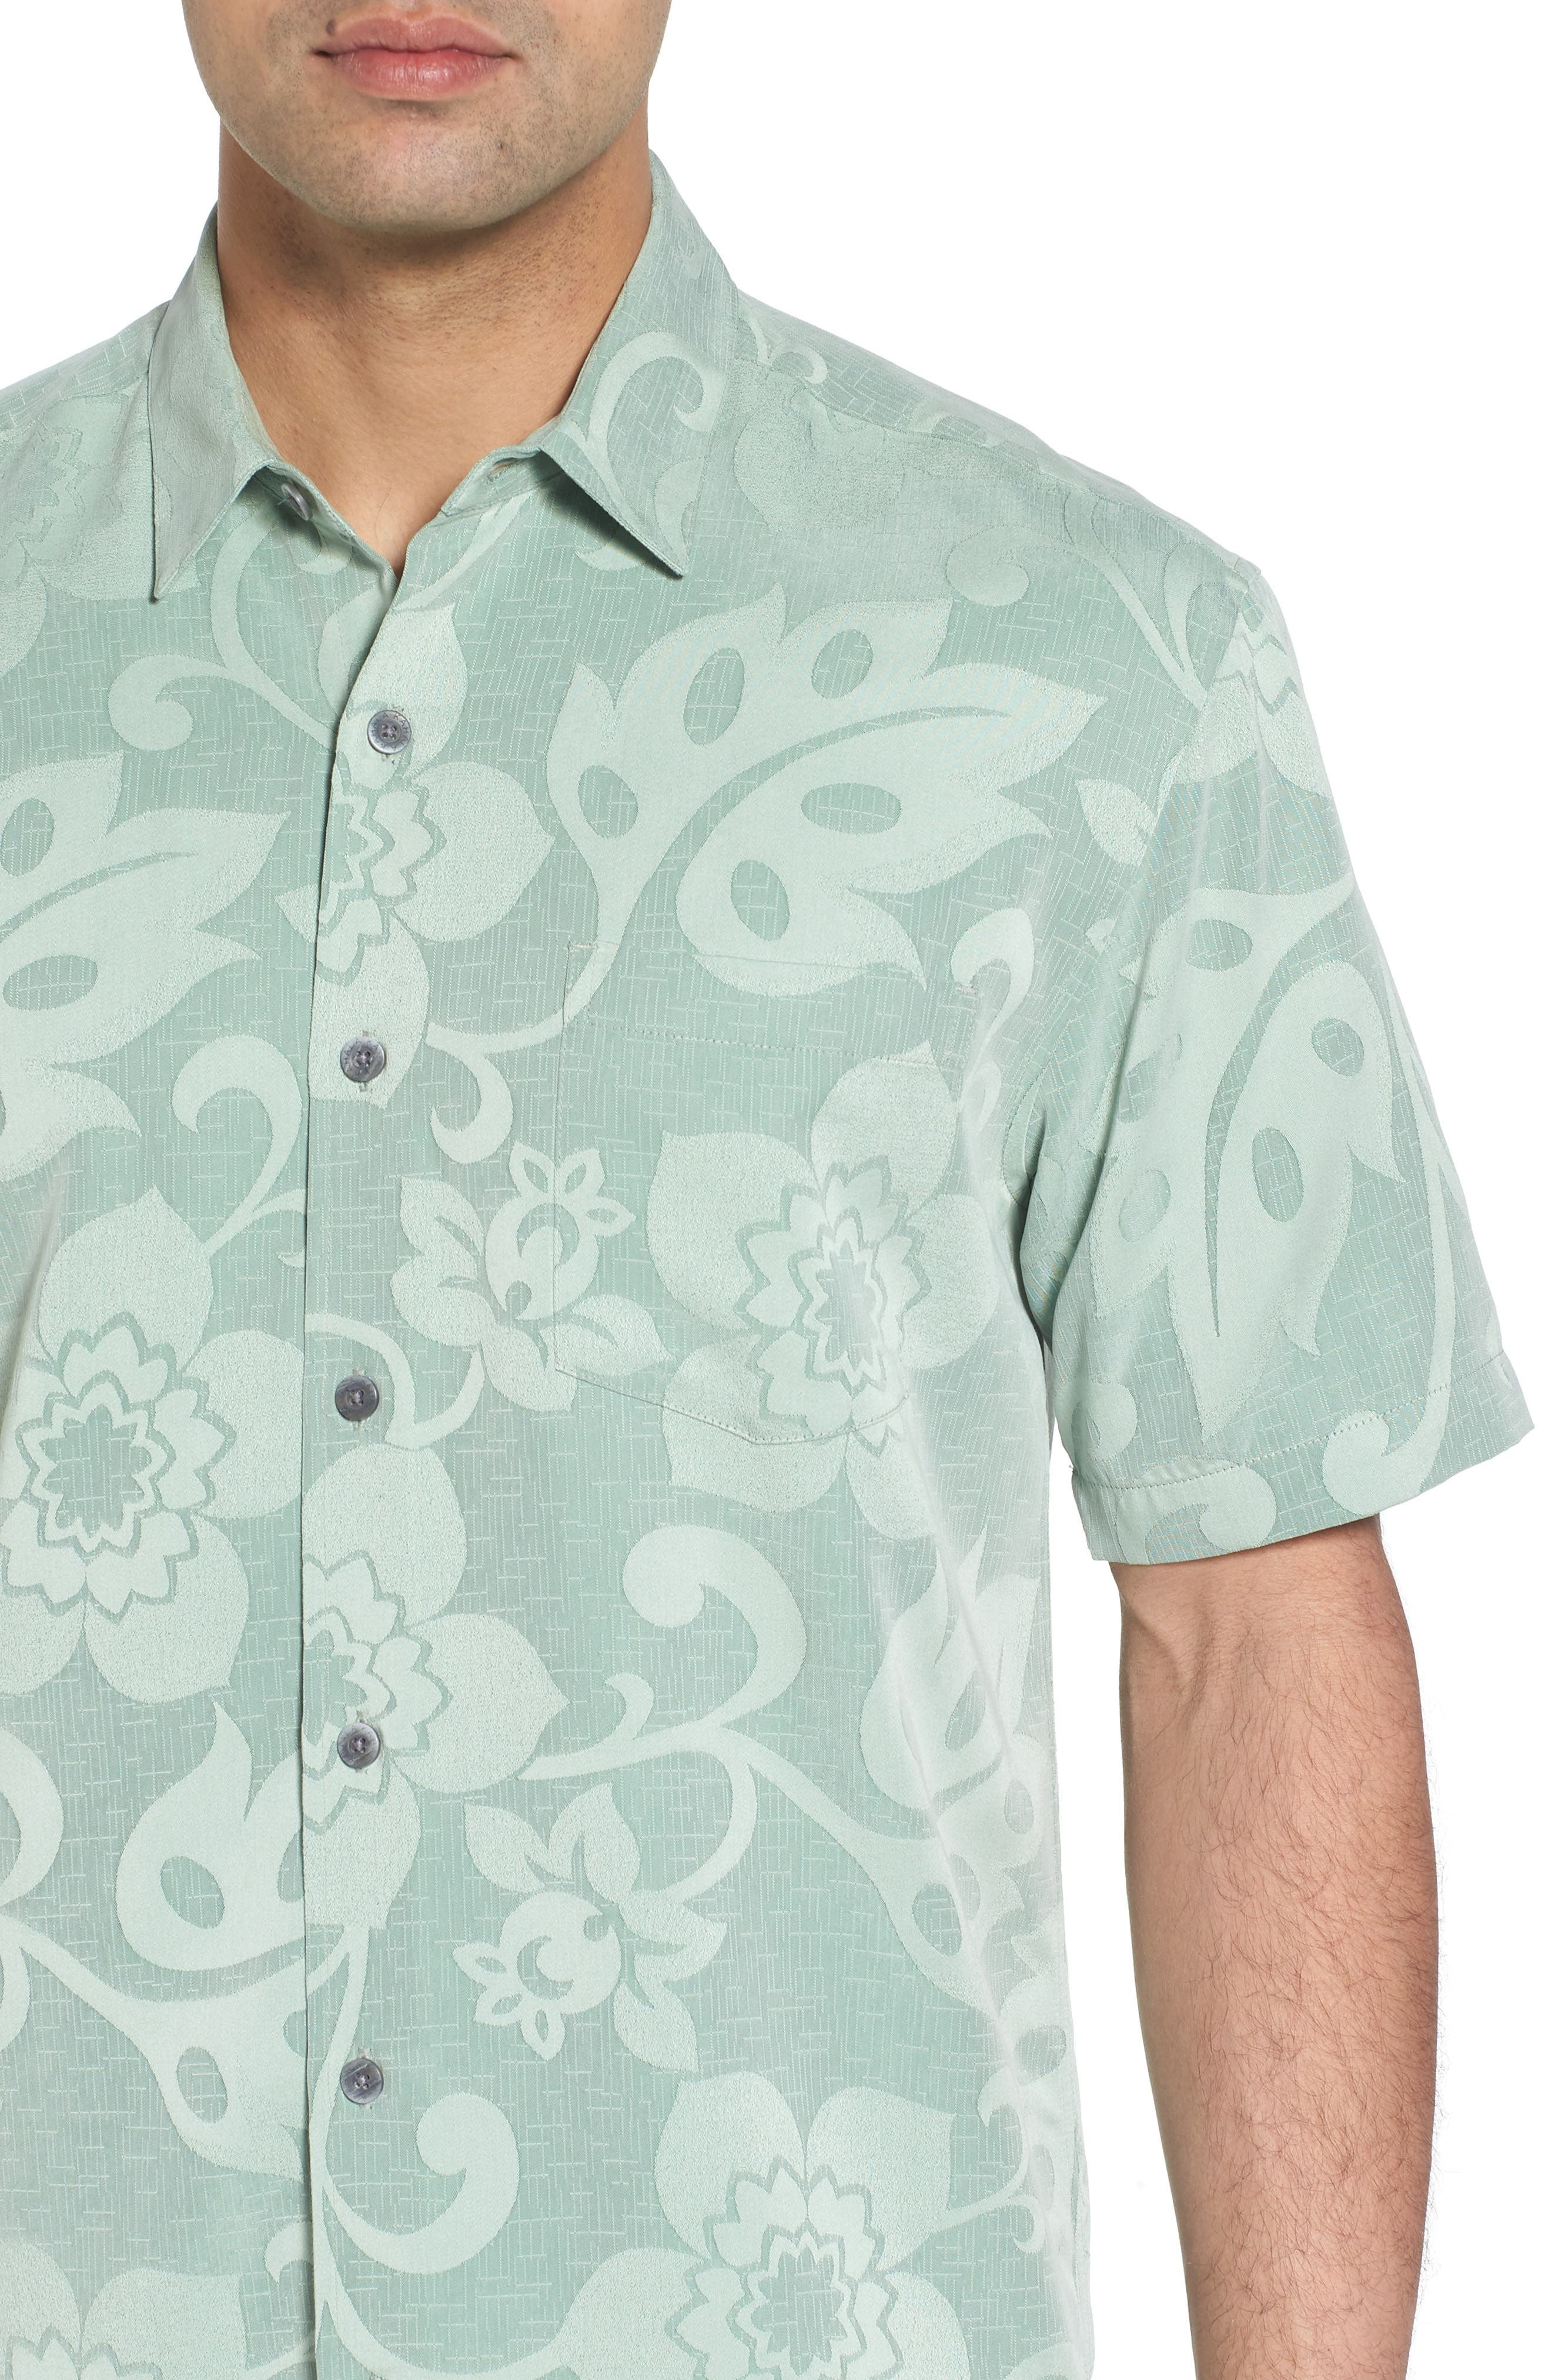 Kalawai Relaxed Fit Camp Shirt,                             Alternate thumbnail 4, color,                             310